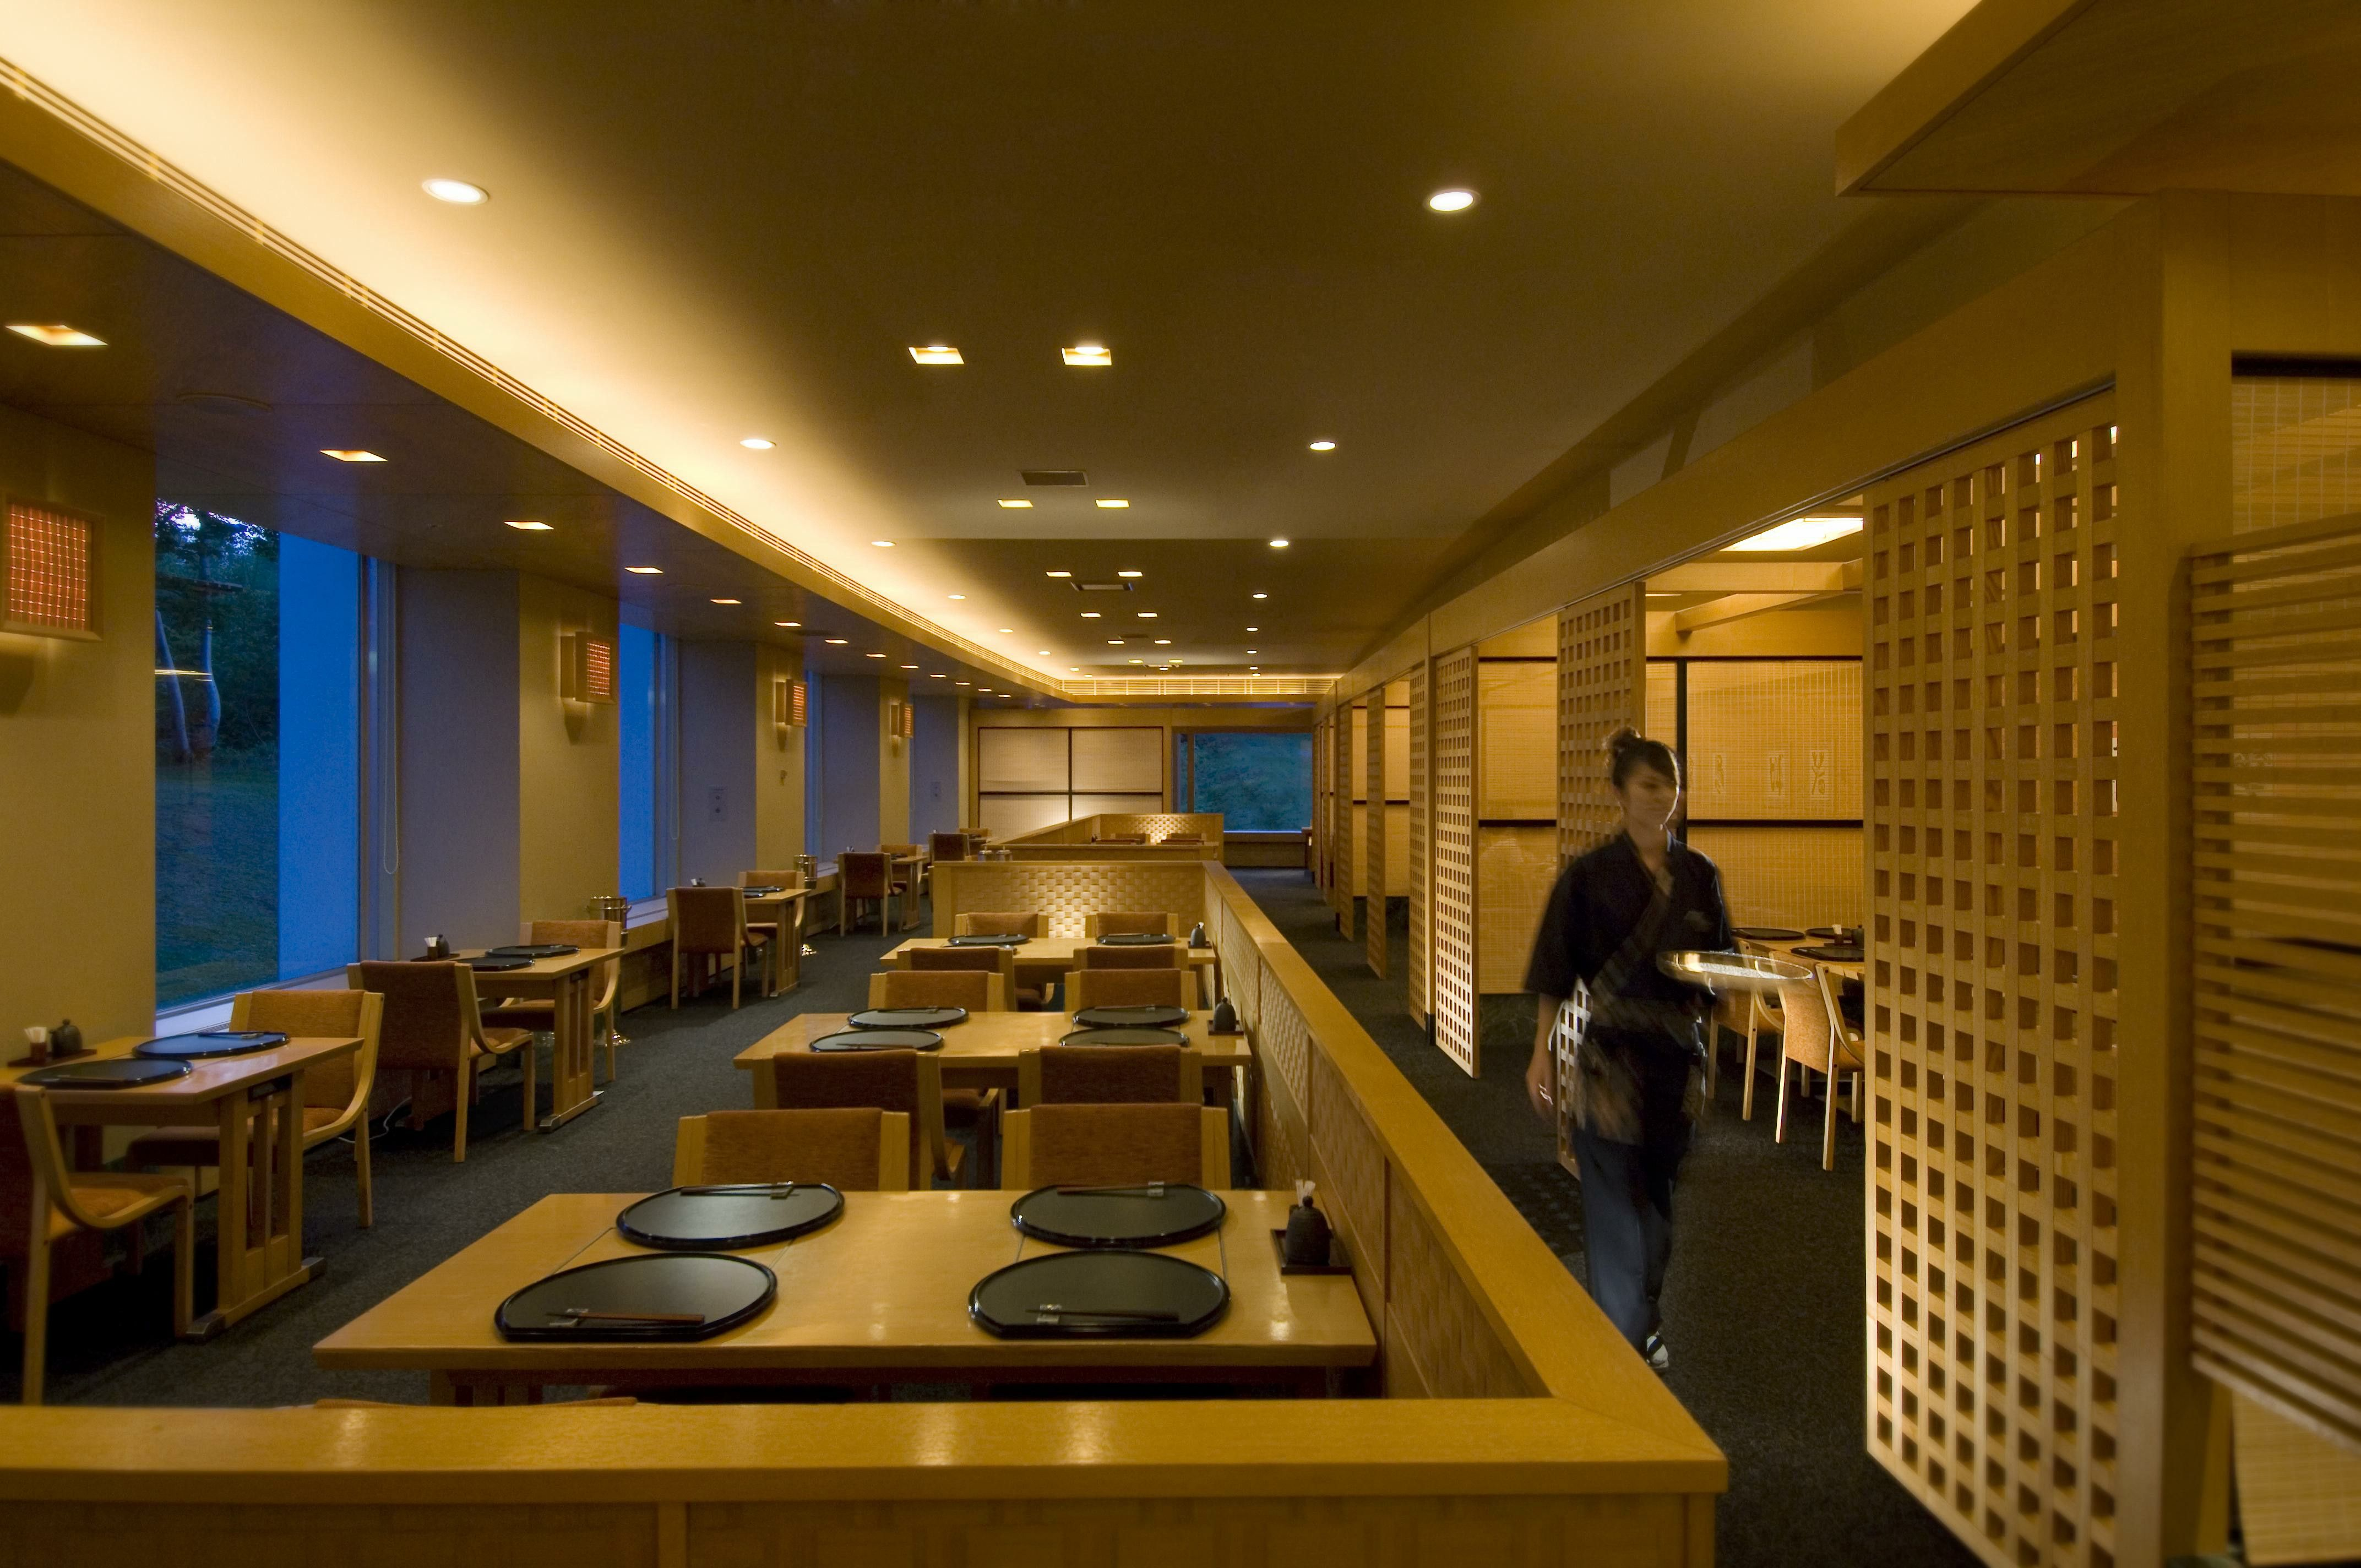 Find this Pin and more on Japanese Restaurant by Longpangpang.